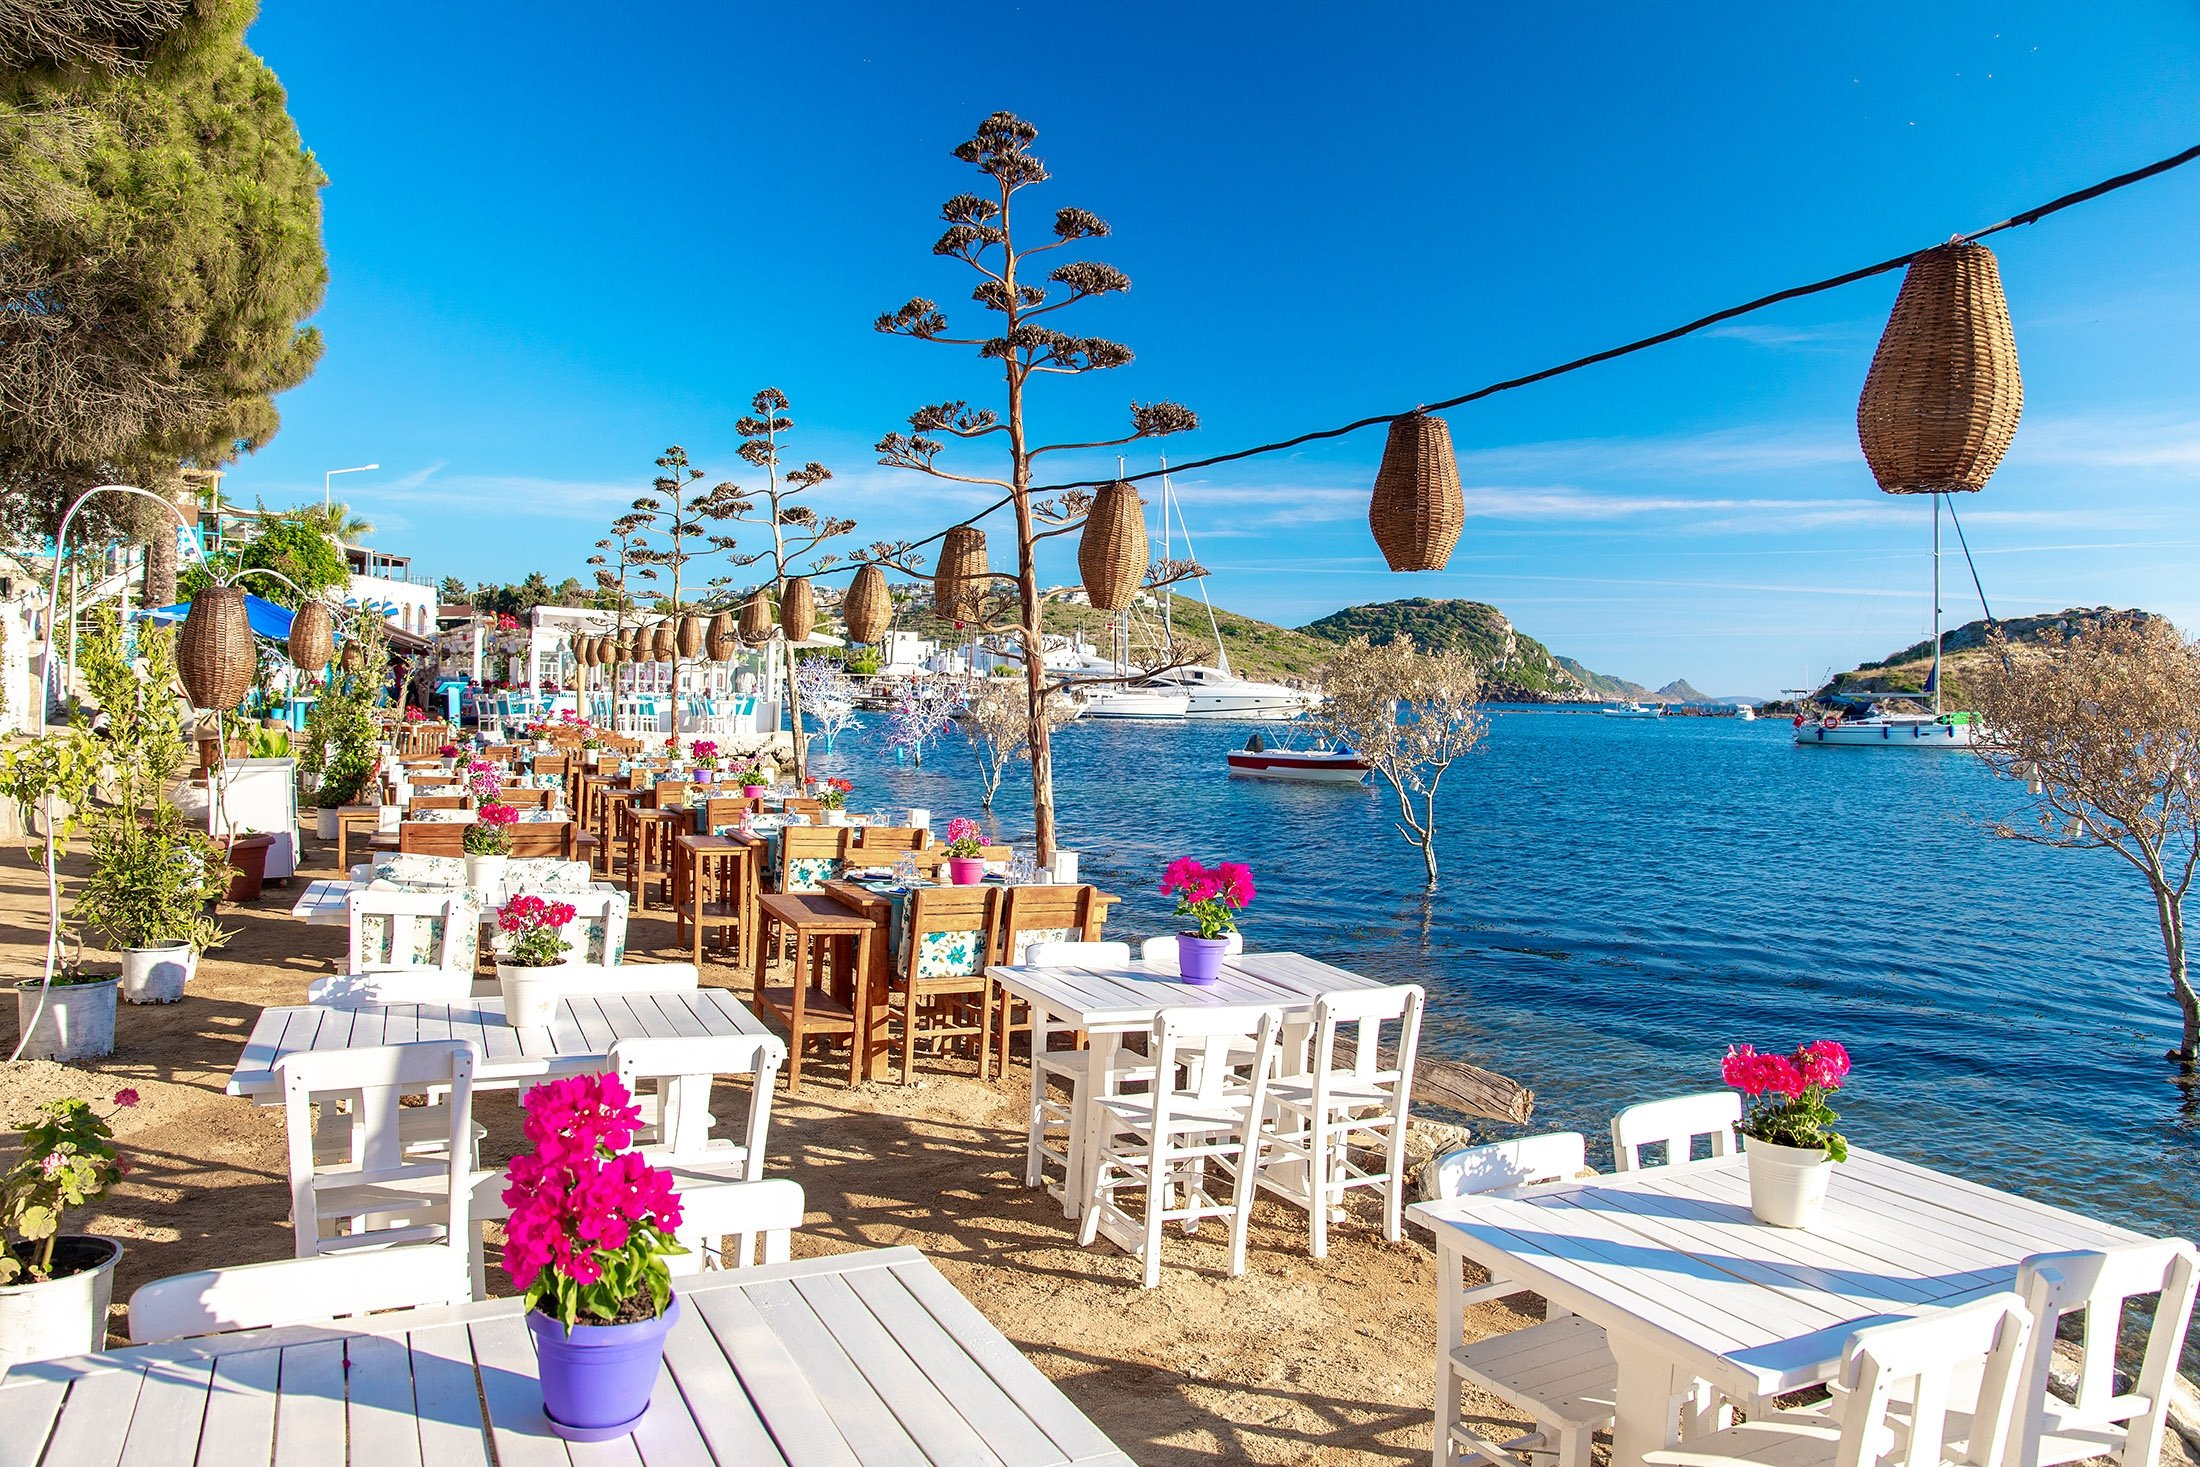 View of a cafe and bougainvillea flowers on a beach in Bodrum, Turkey. (Shutterstock Photo)